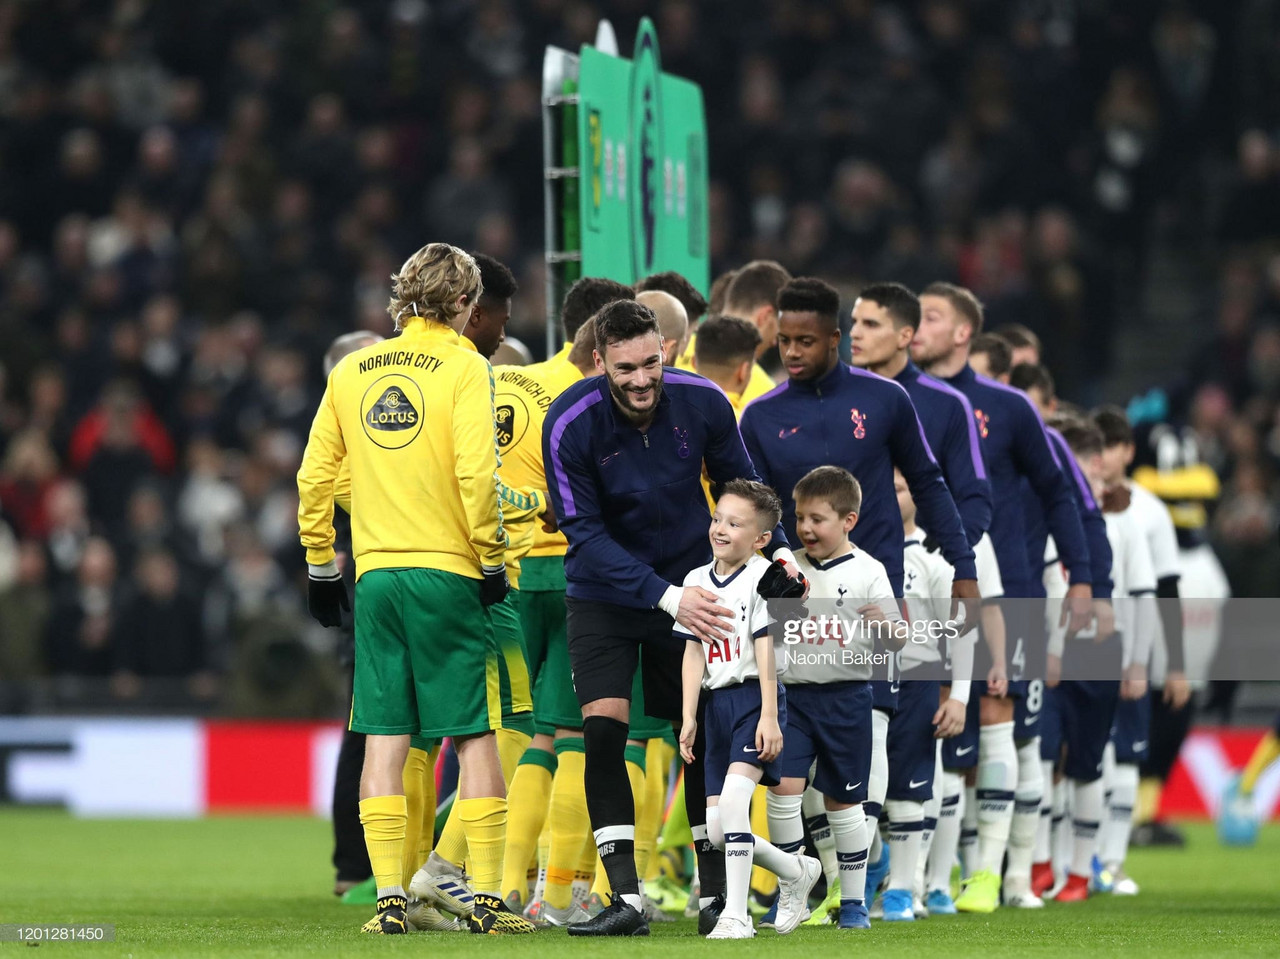 Tottenham Hotspur vs Norwich City Preview: Two wins from Wembley